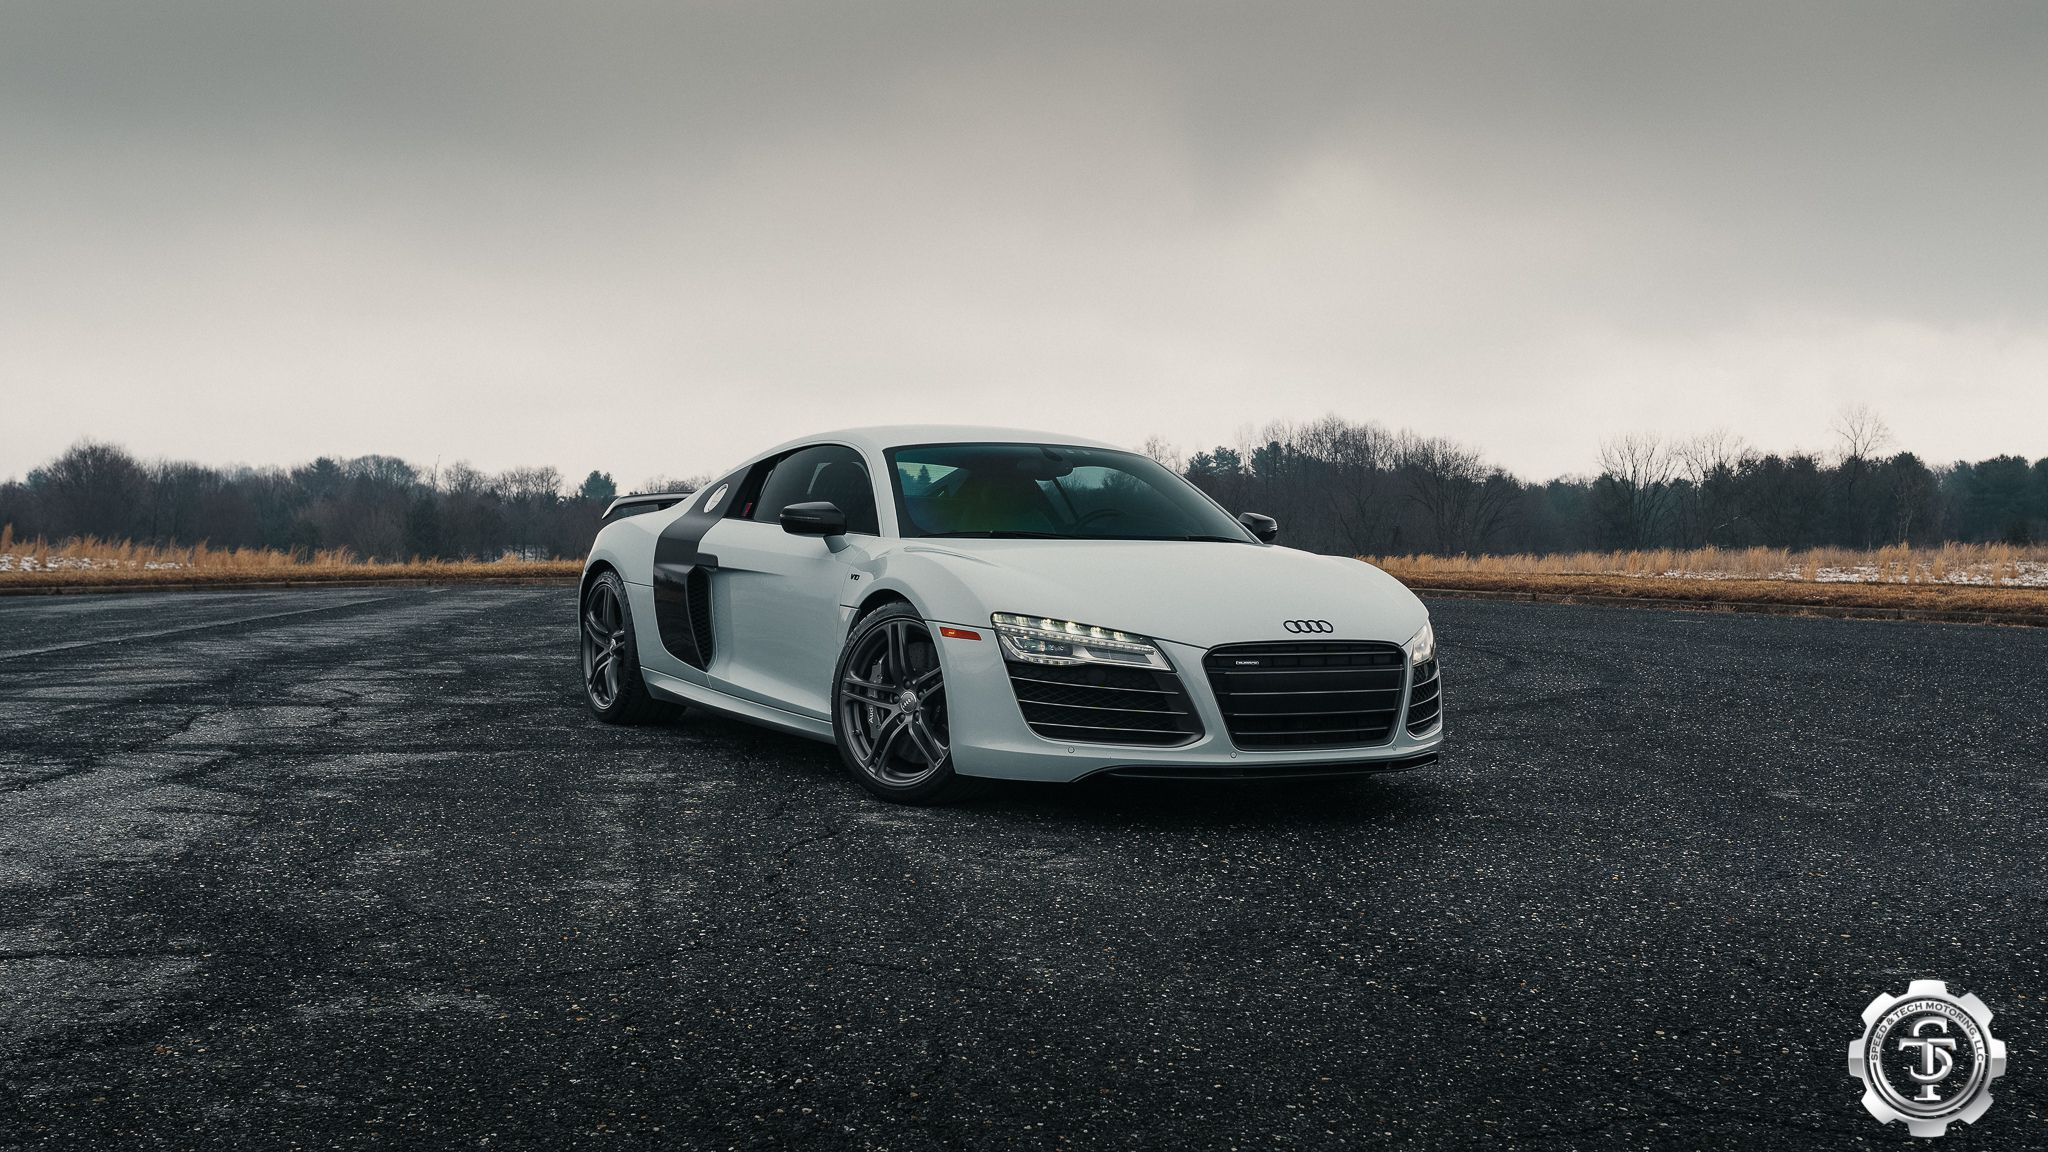 STM R8 at cloudy day